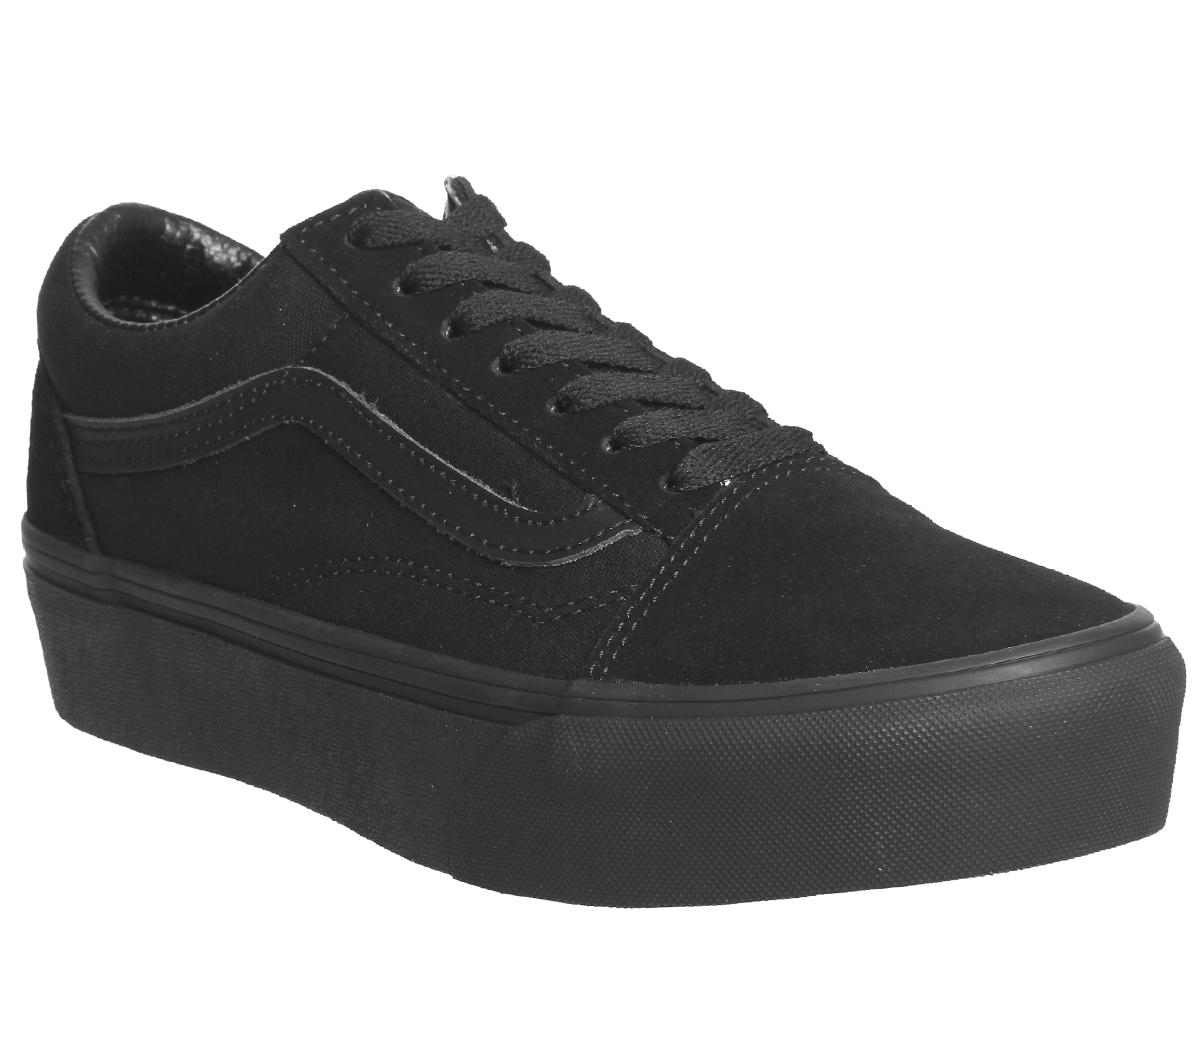 Vans Old Skool Platform Womens Trainers in Black Black